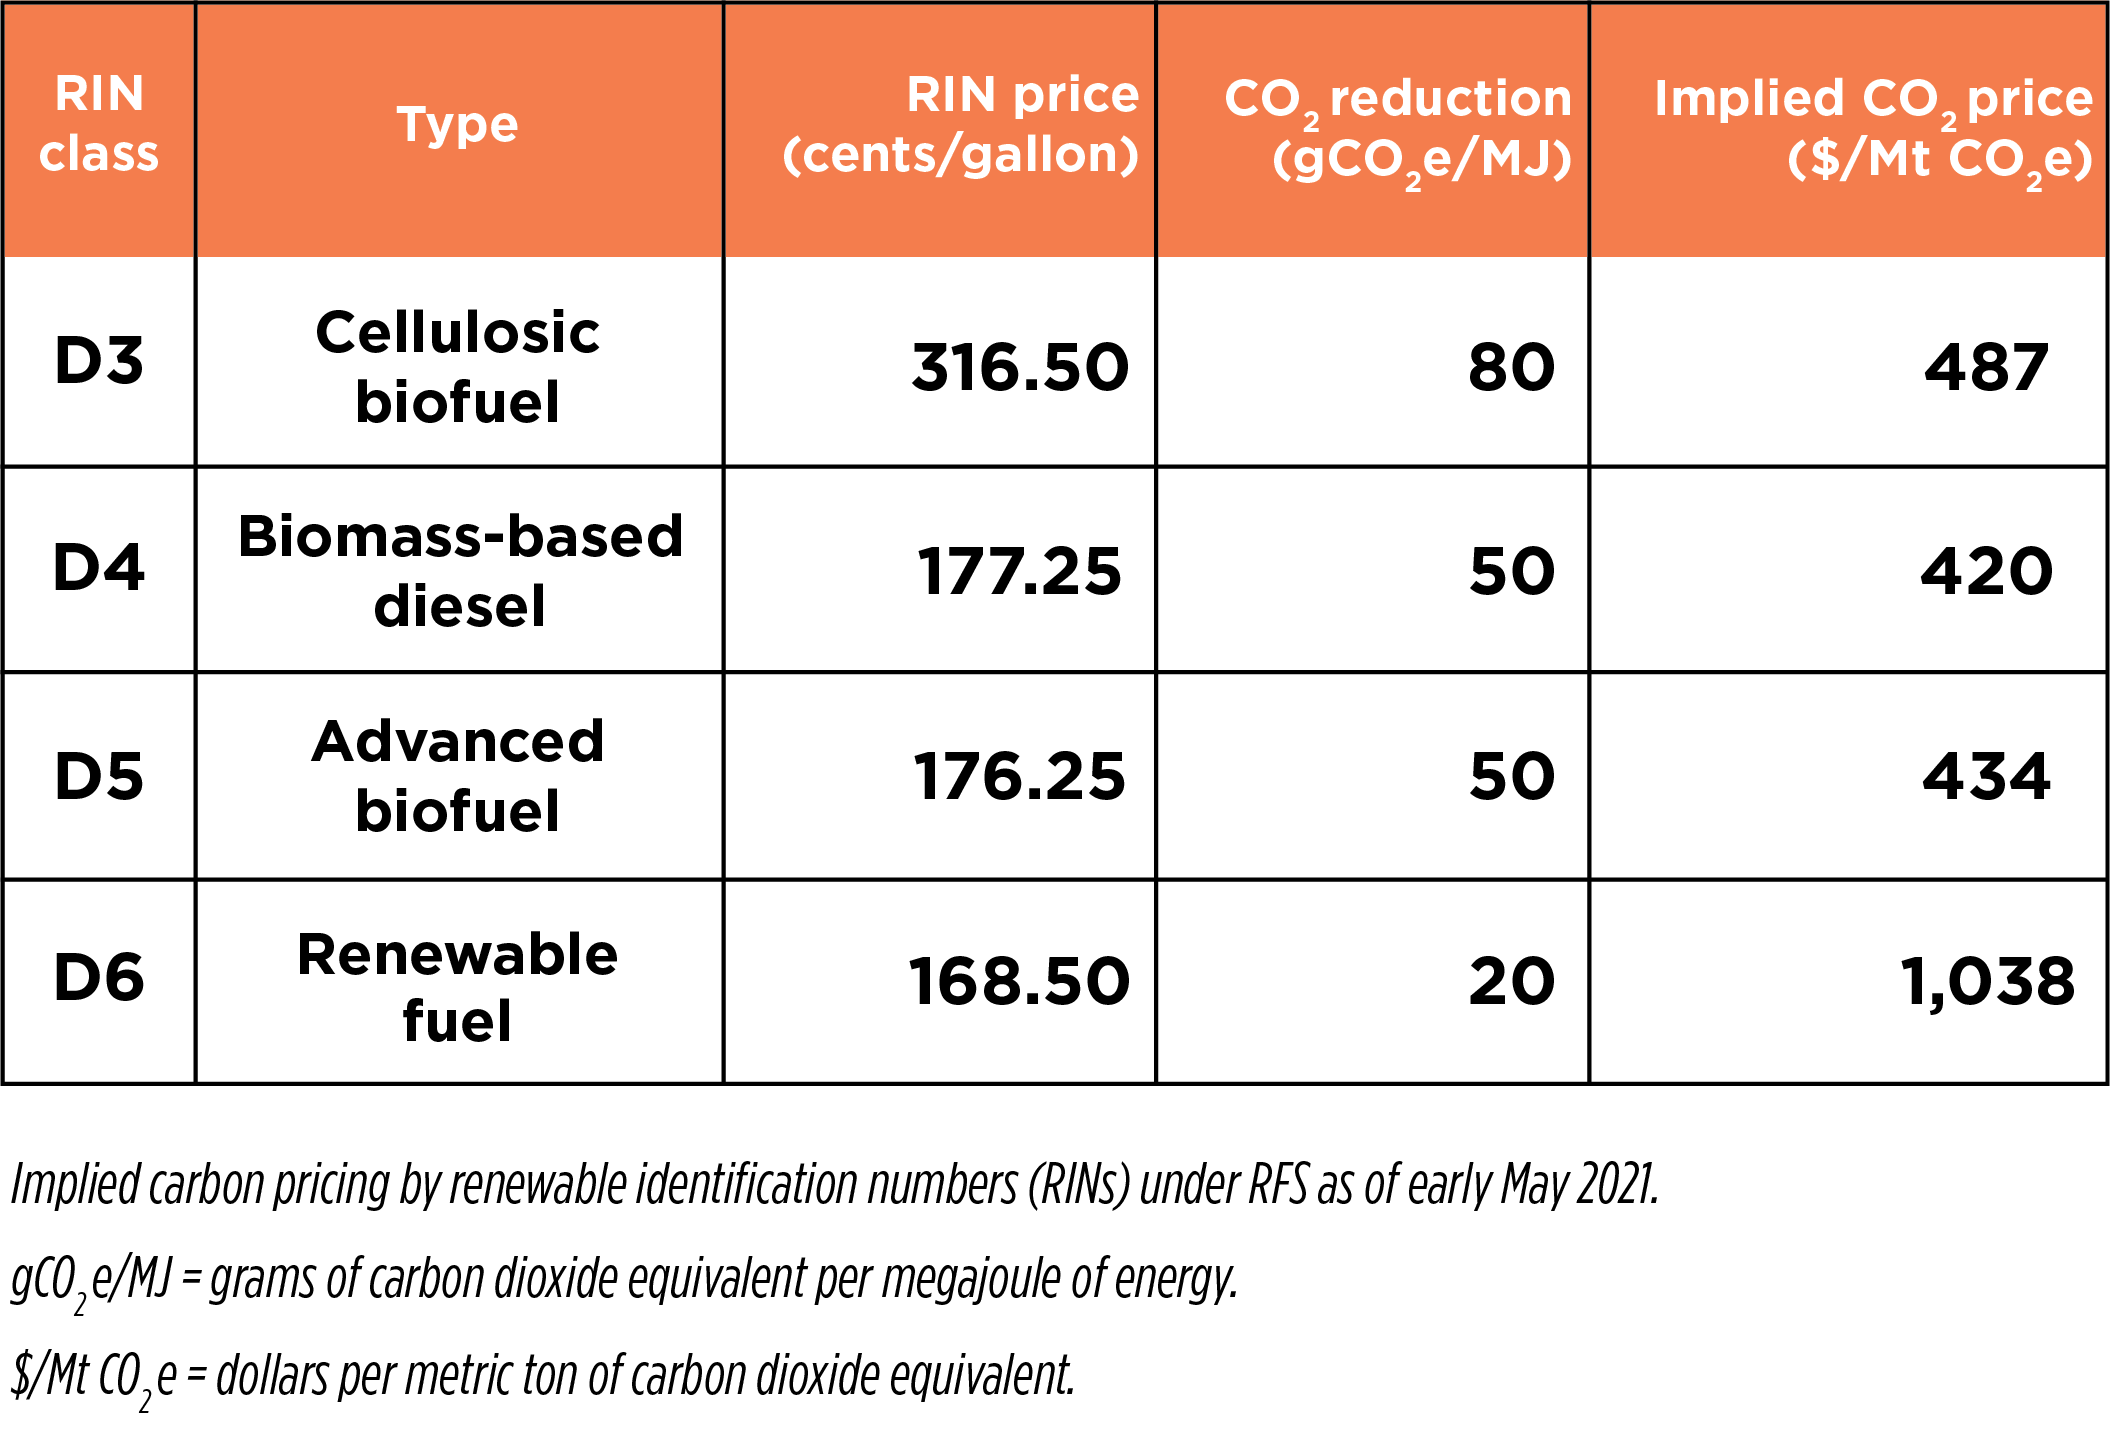 Implied-carbon-pricing-by-RINs-under-RFS